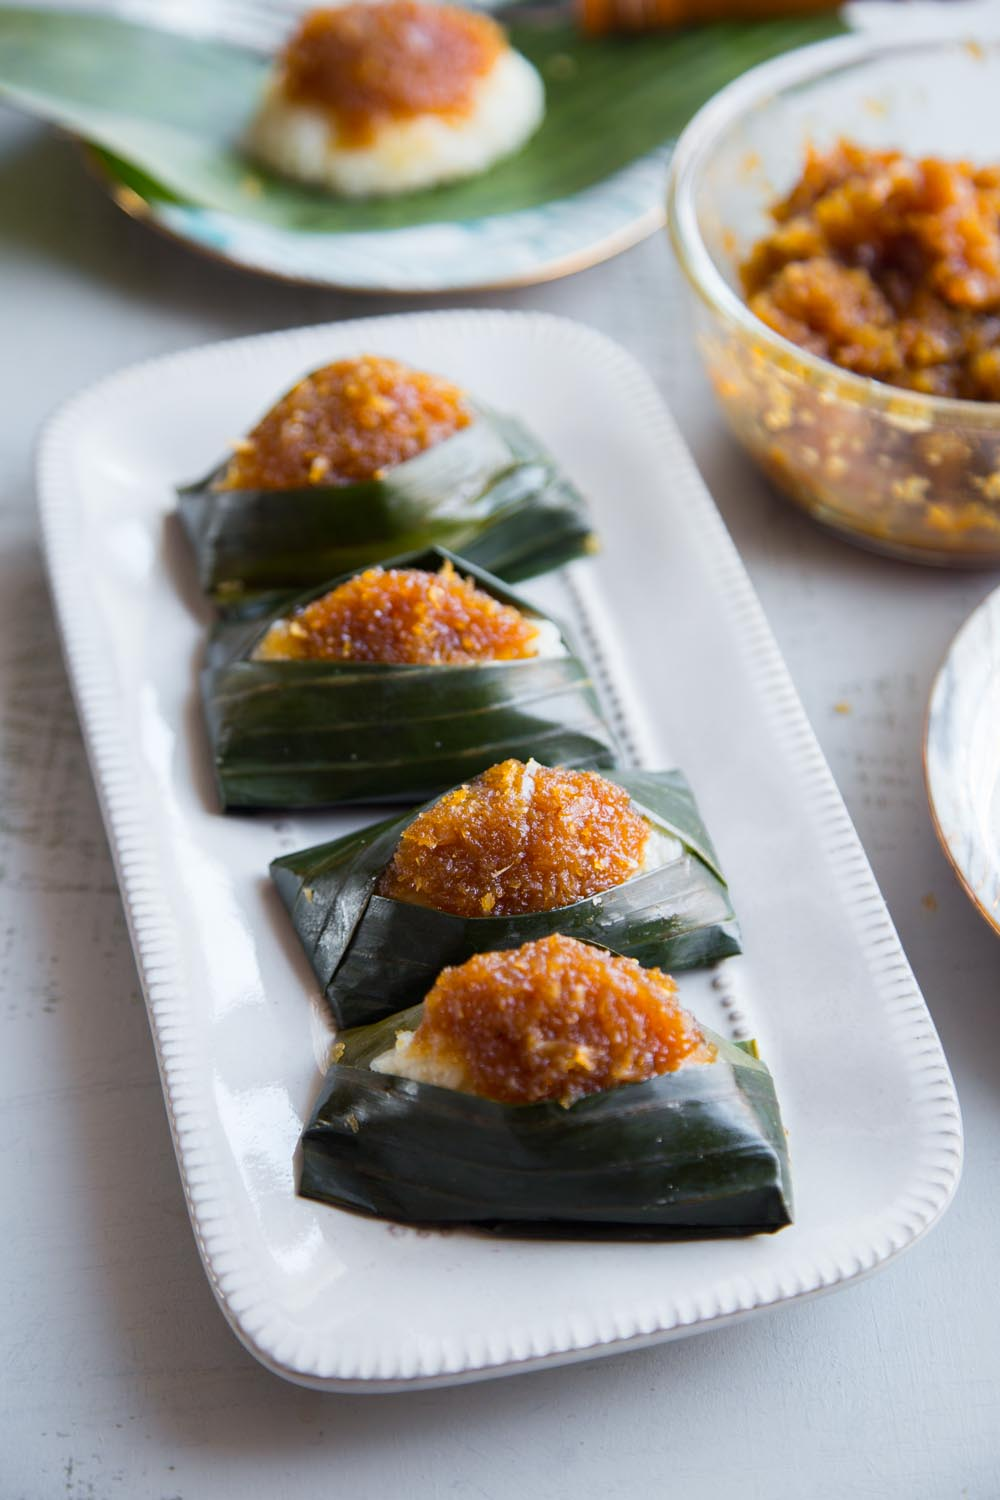 Nyonya Pulut Inti (Glutinous Rice With Sweet Coconut Topping)